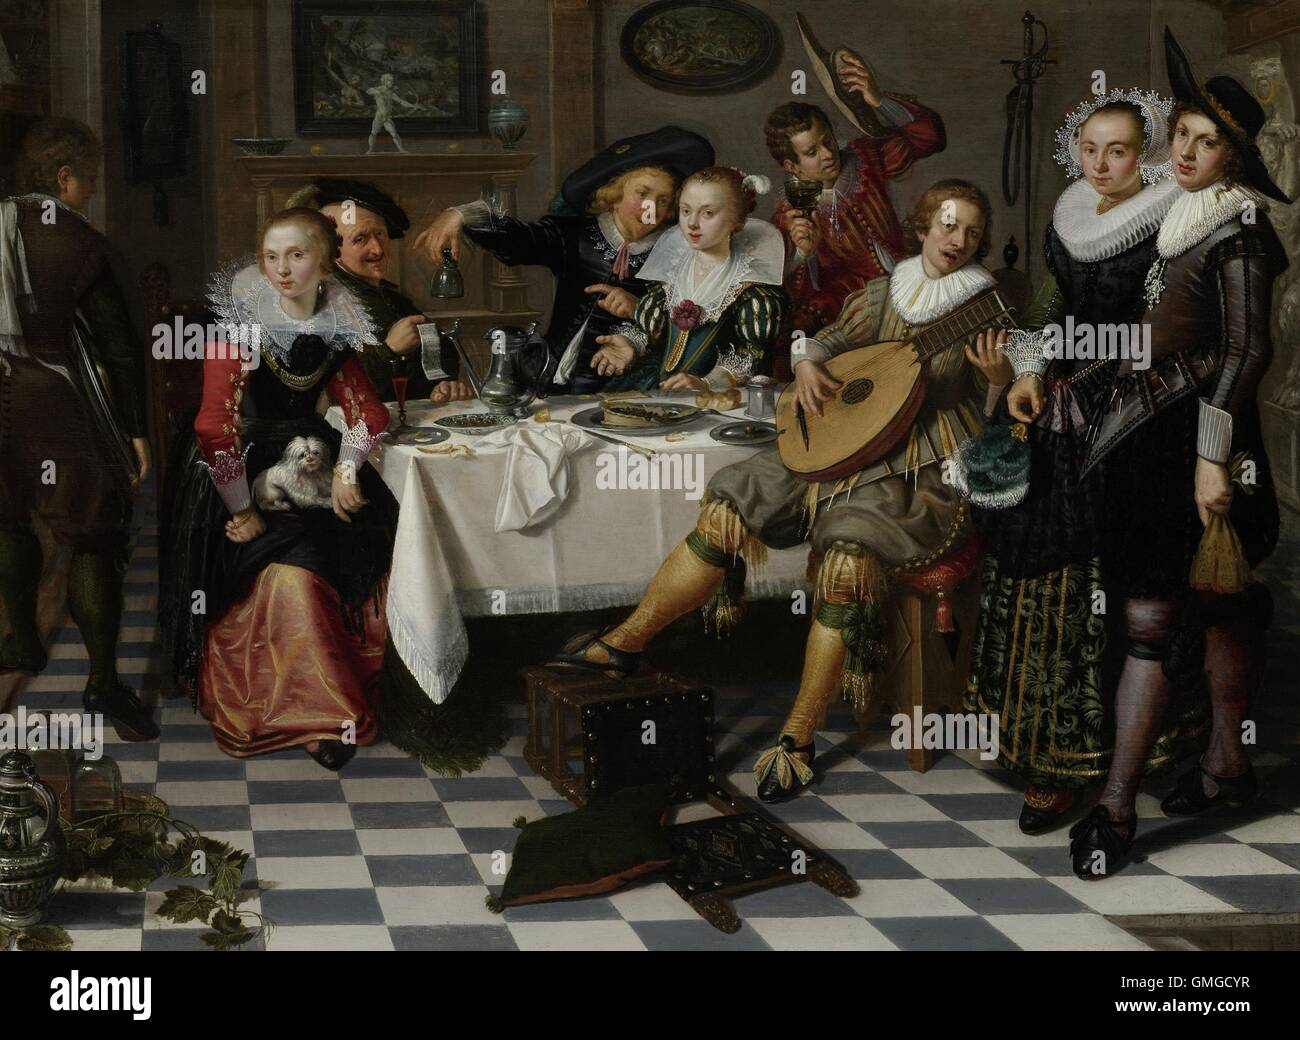 Merry Company, by Isack Elyas, 1629, Dutch painting, oil on panel. Interior with partying, drinking and music making - Stock Image